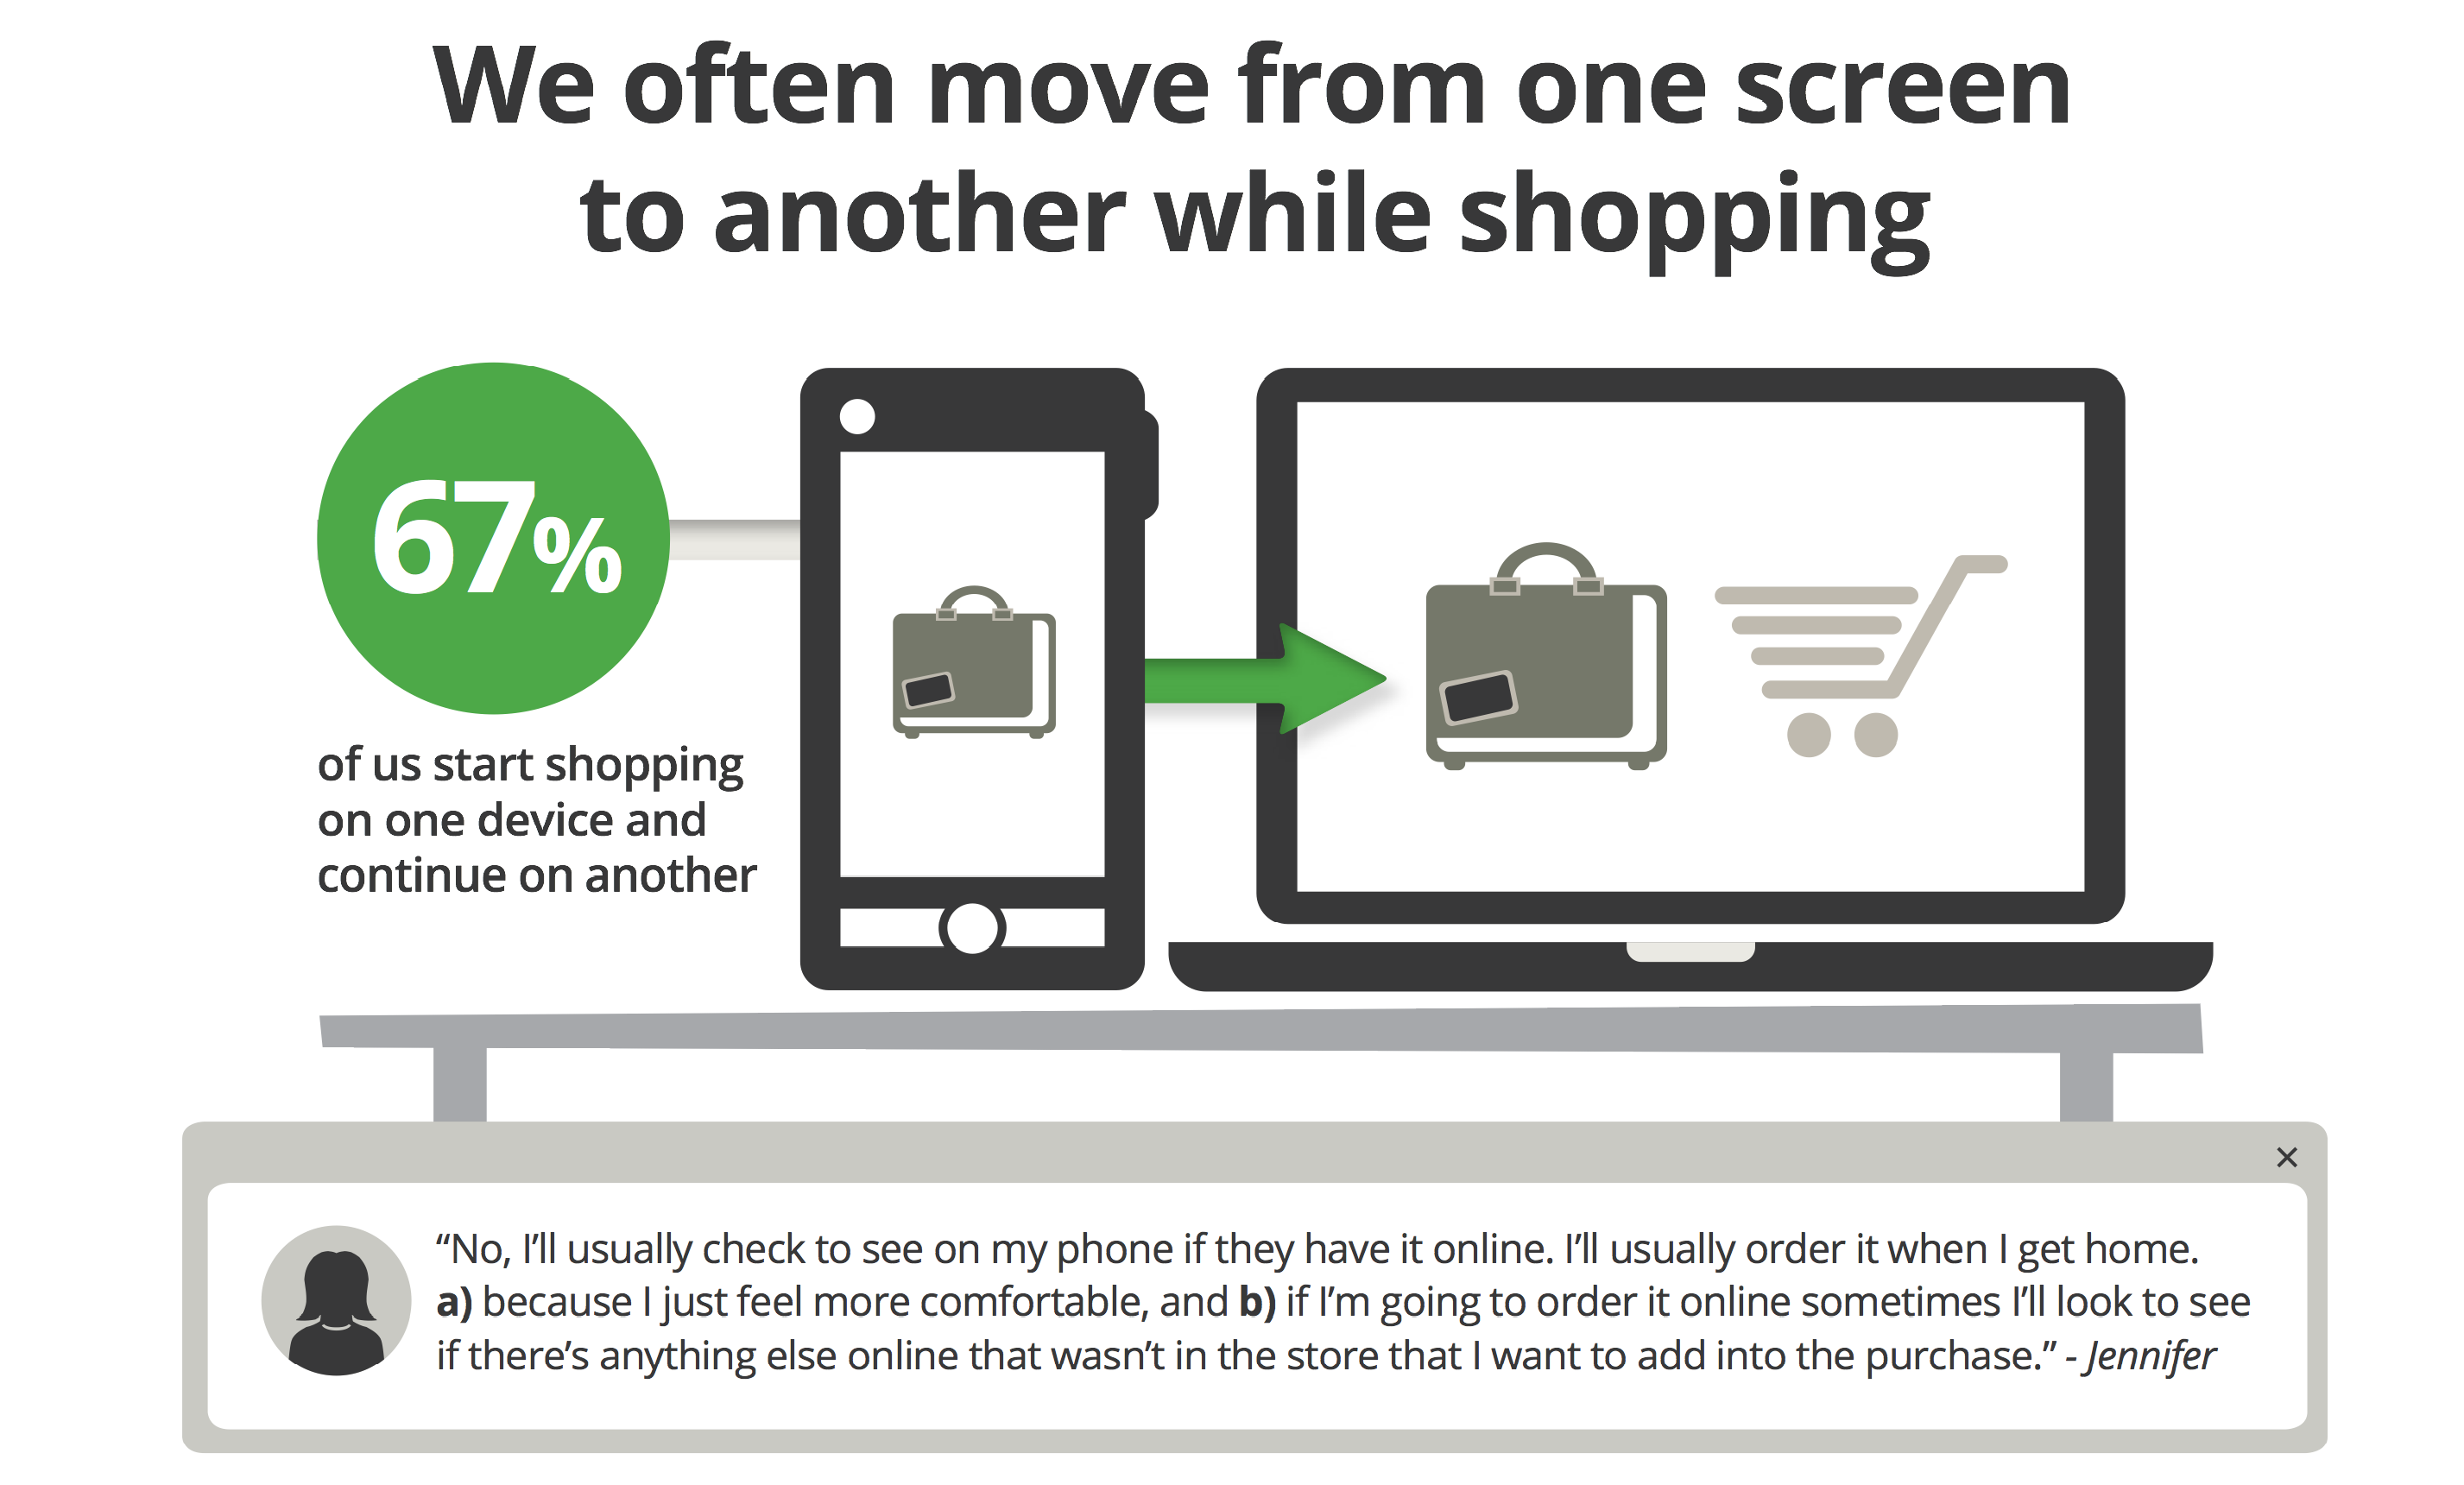 We often move from one screen to another when shopping